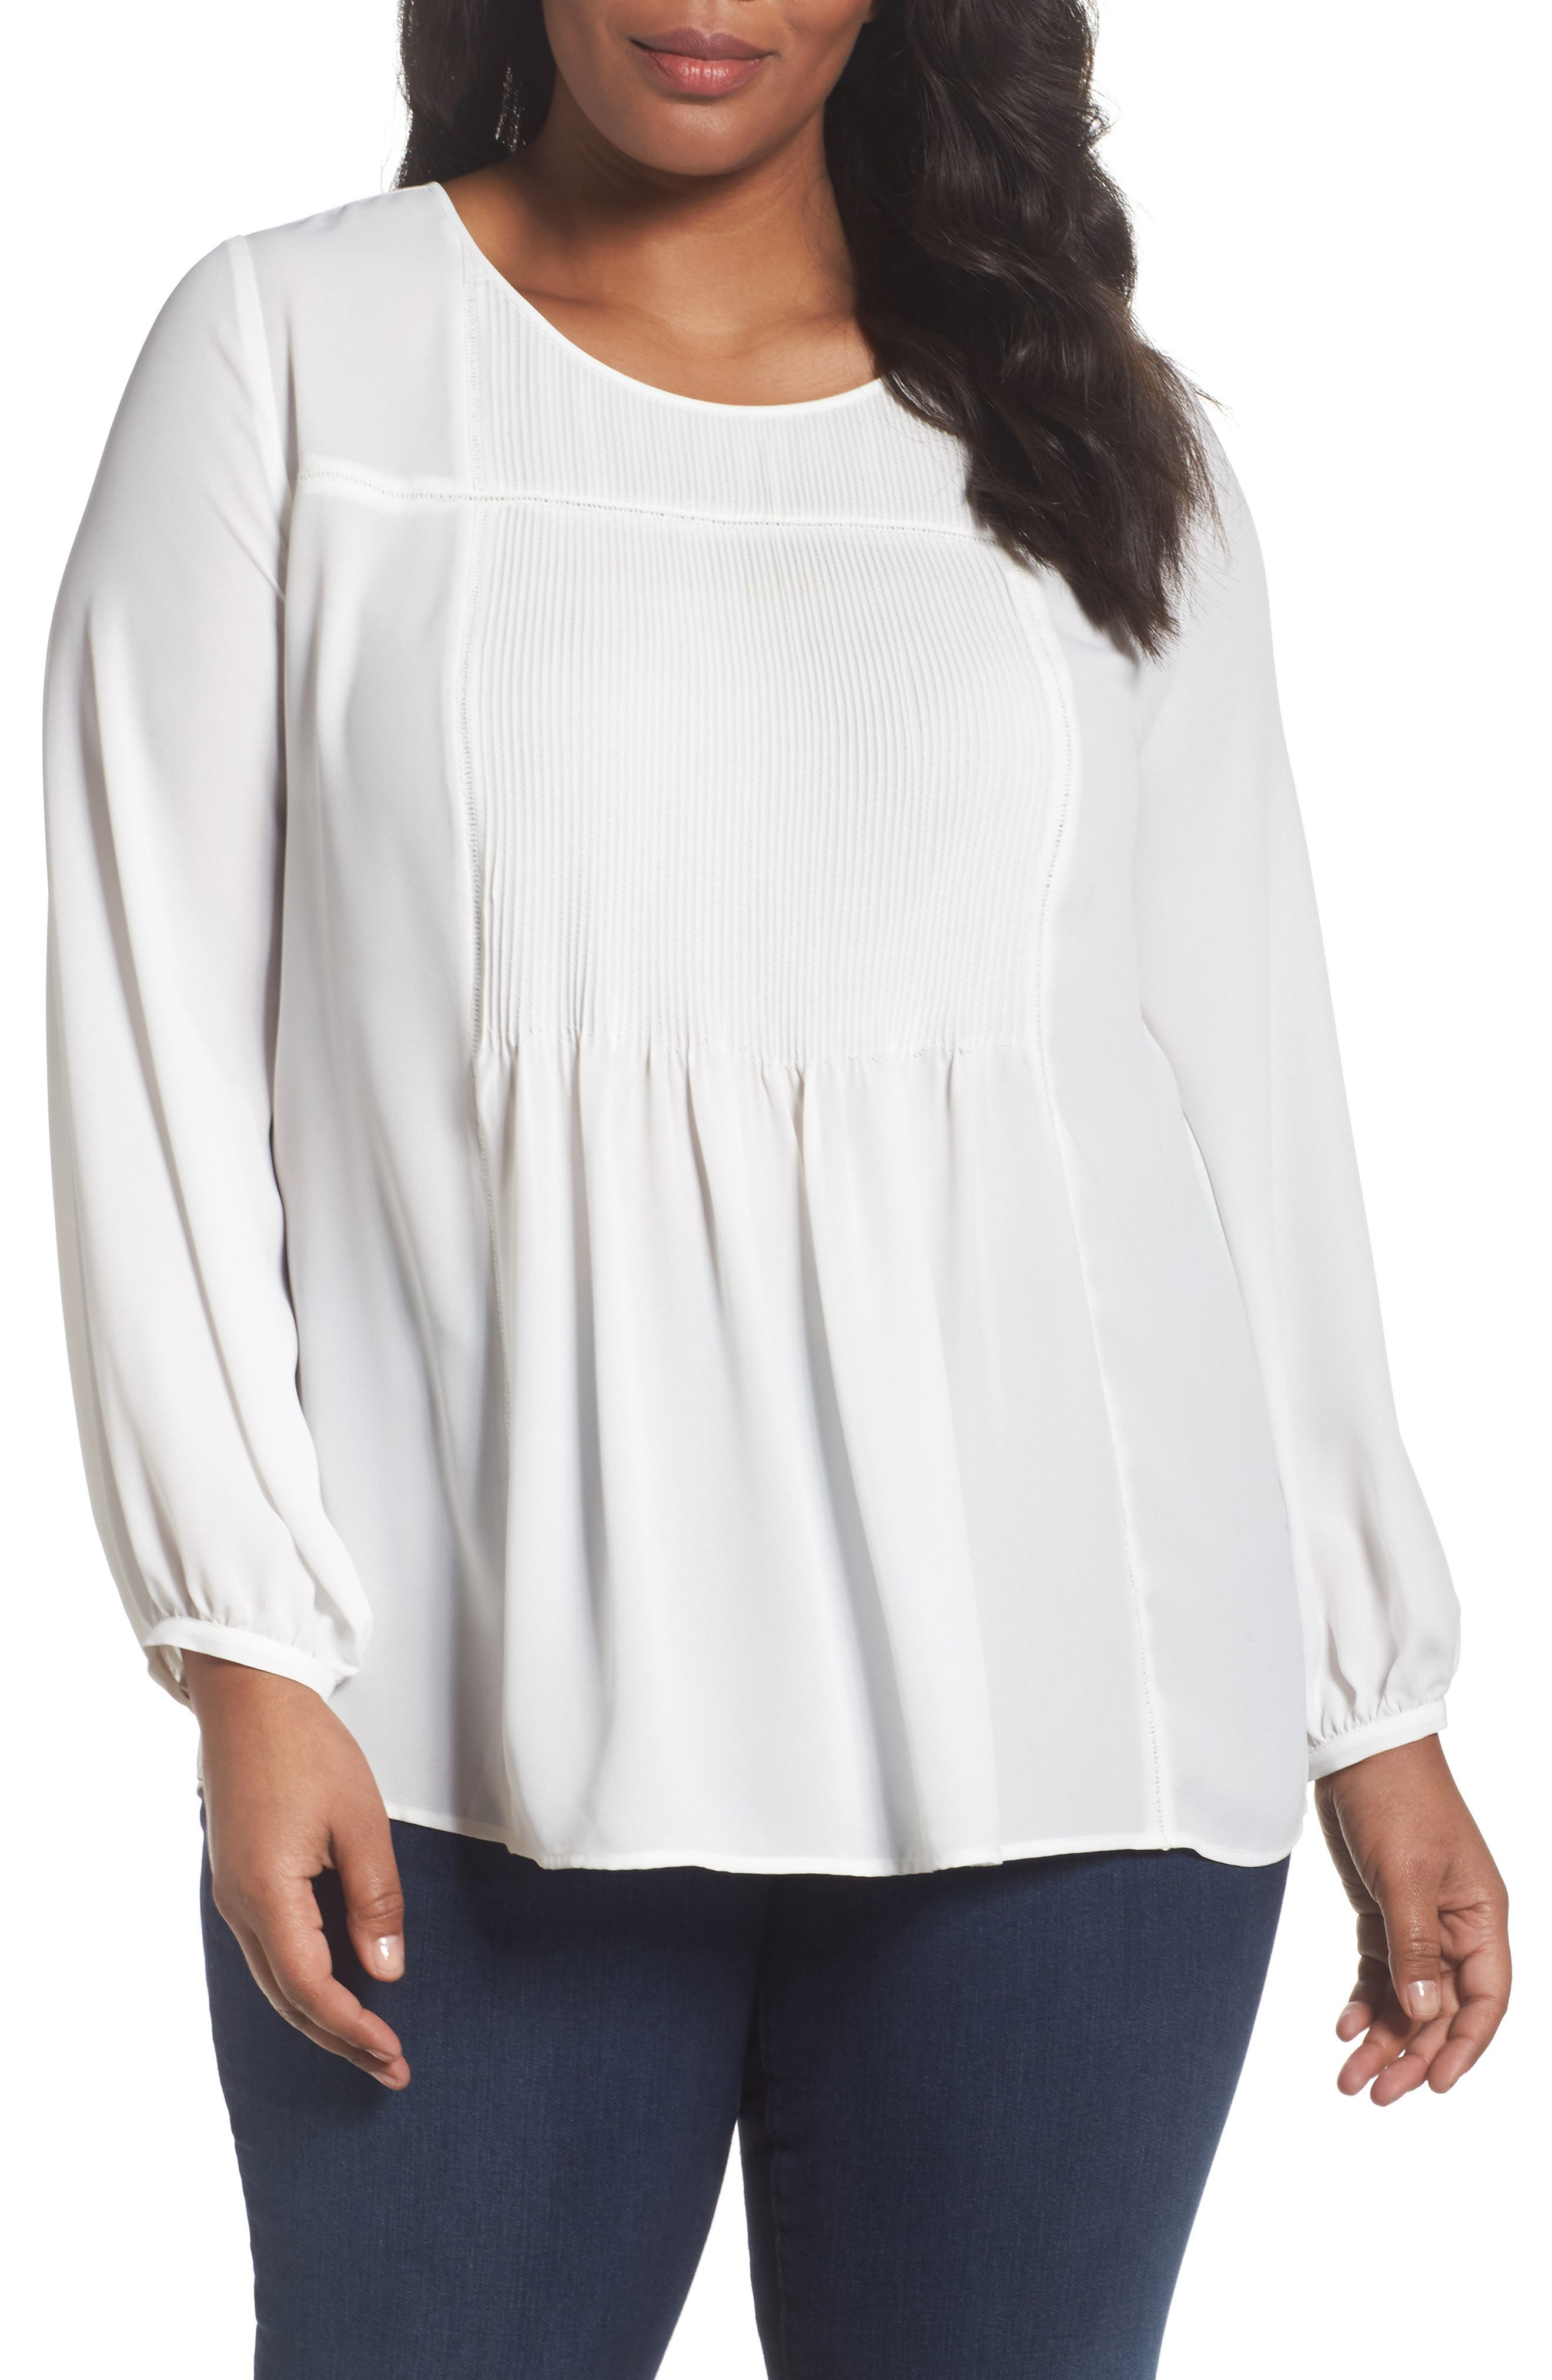 Alternate Image 1 Selected - Sejour Pintuck Blouse (Plus Size)